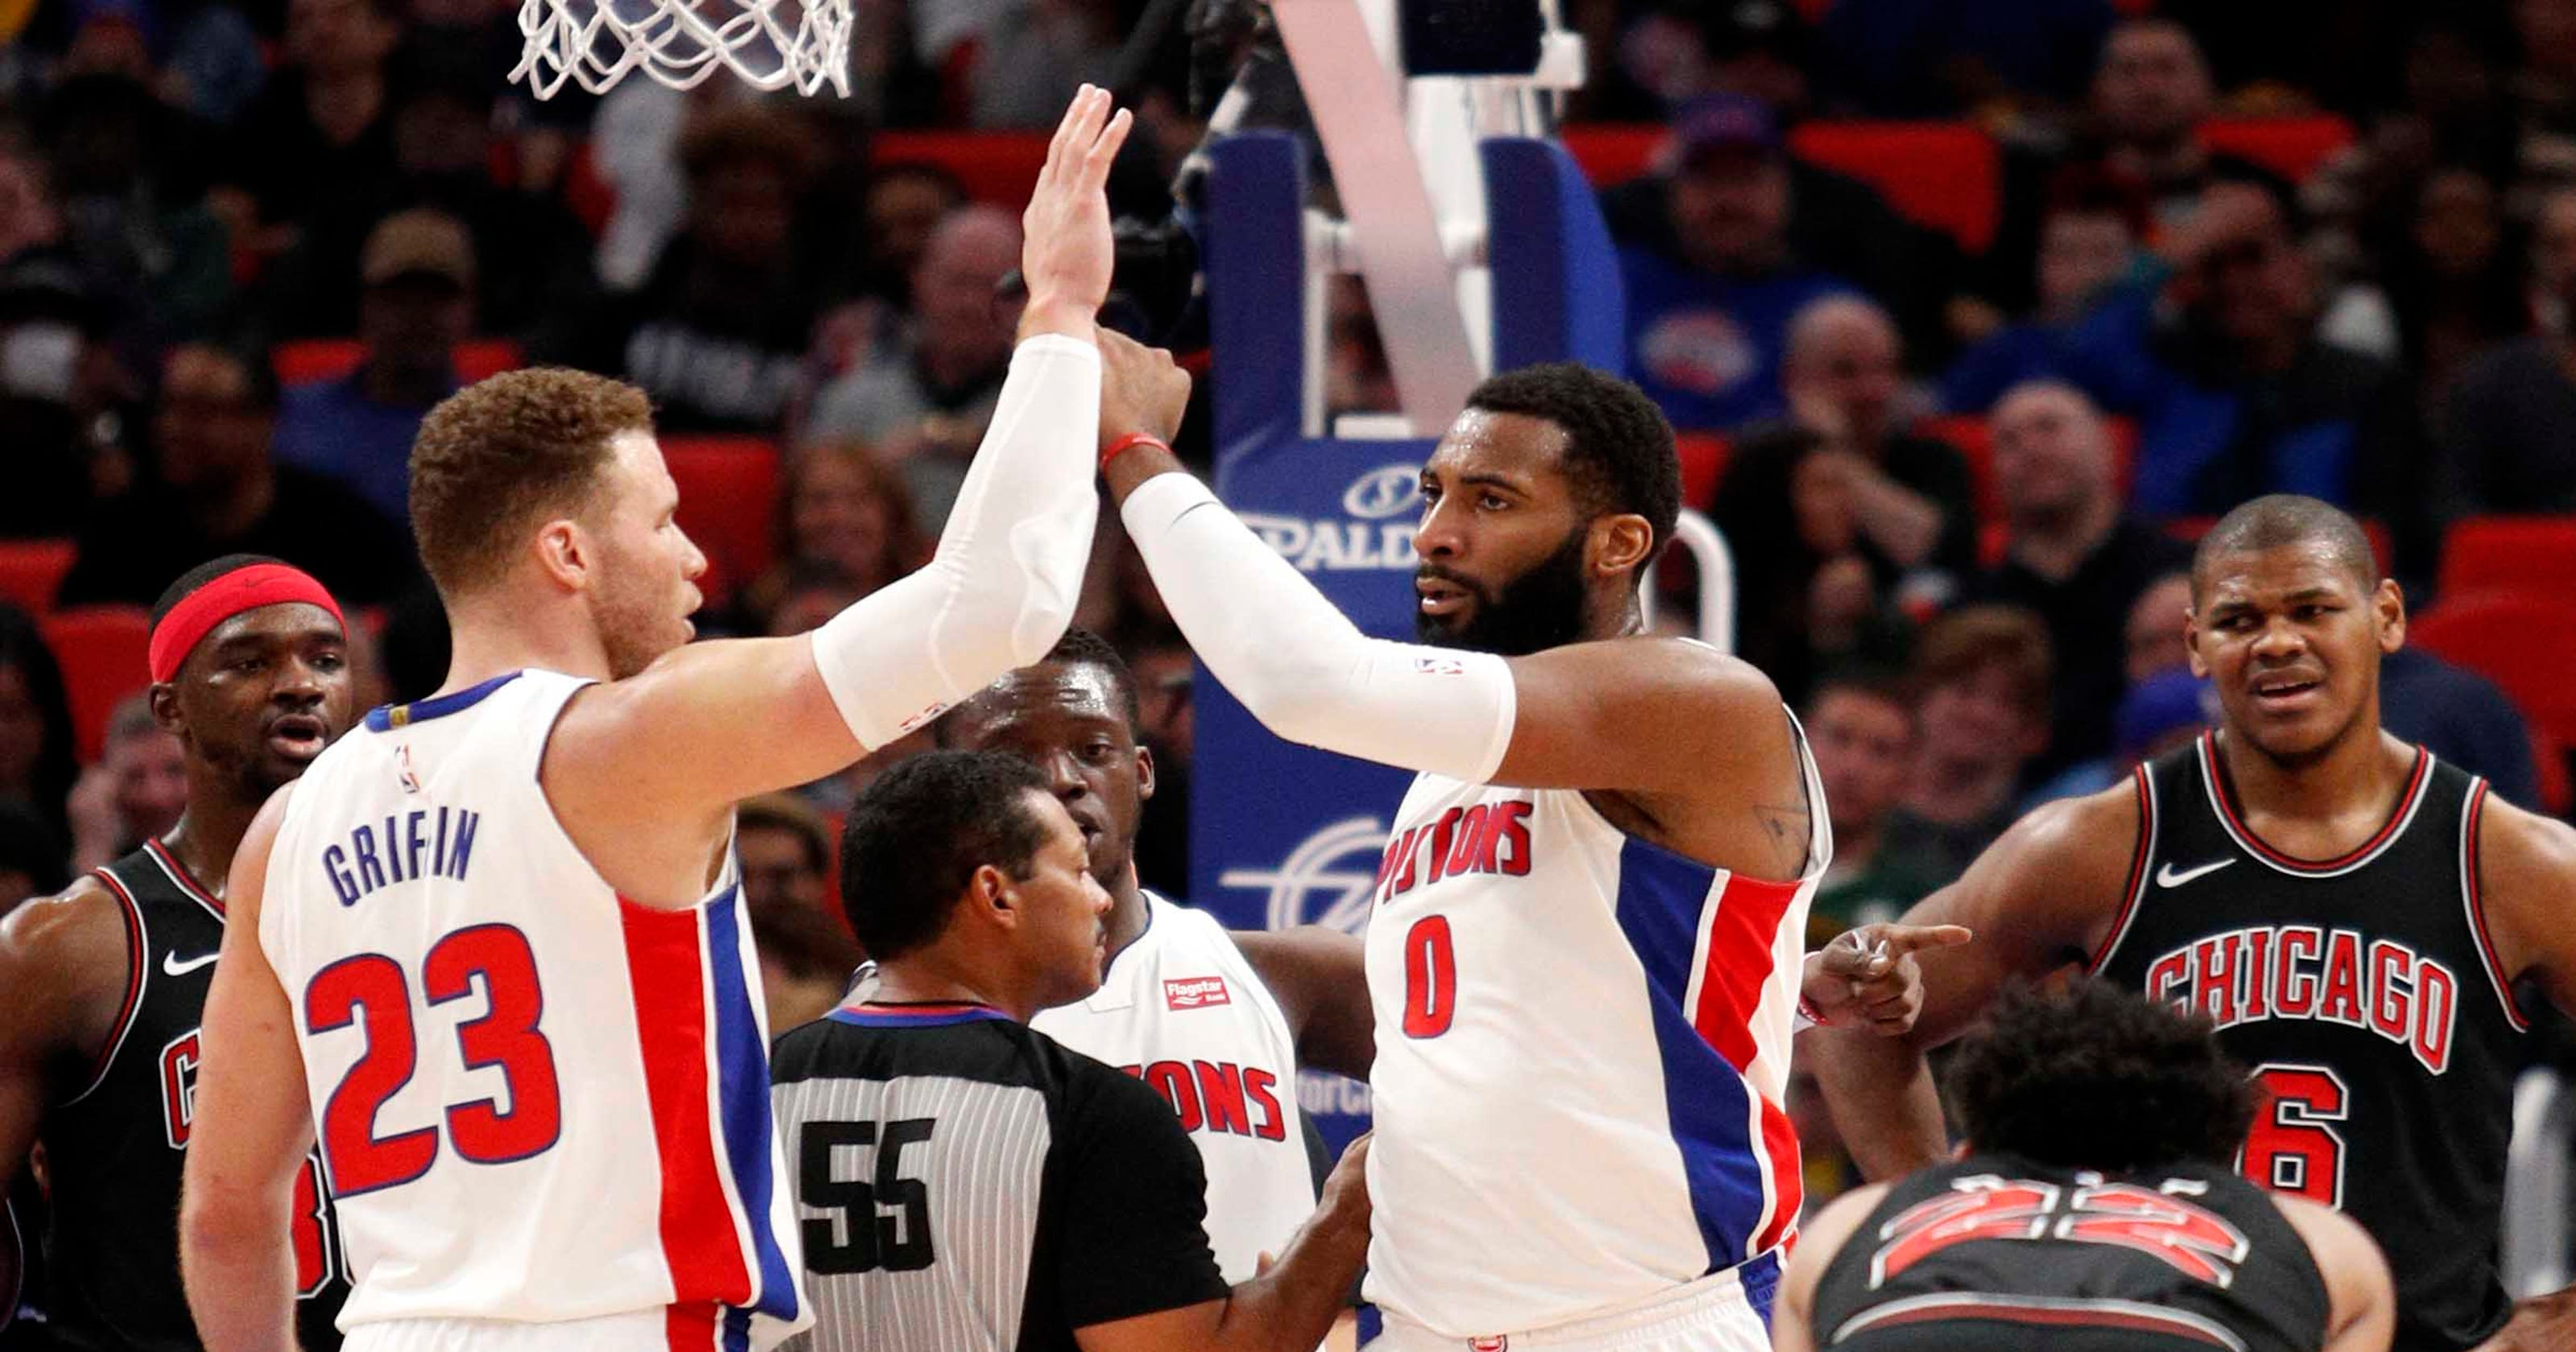 Detroit Pistons 2018 Preseason Schedule When Are They Home